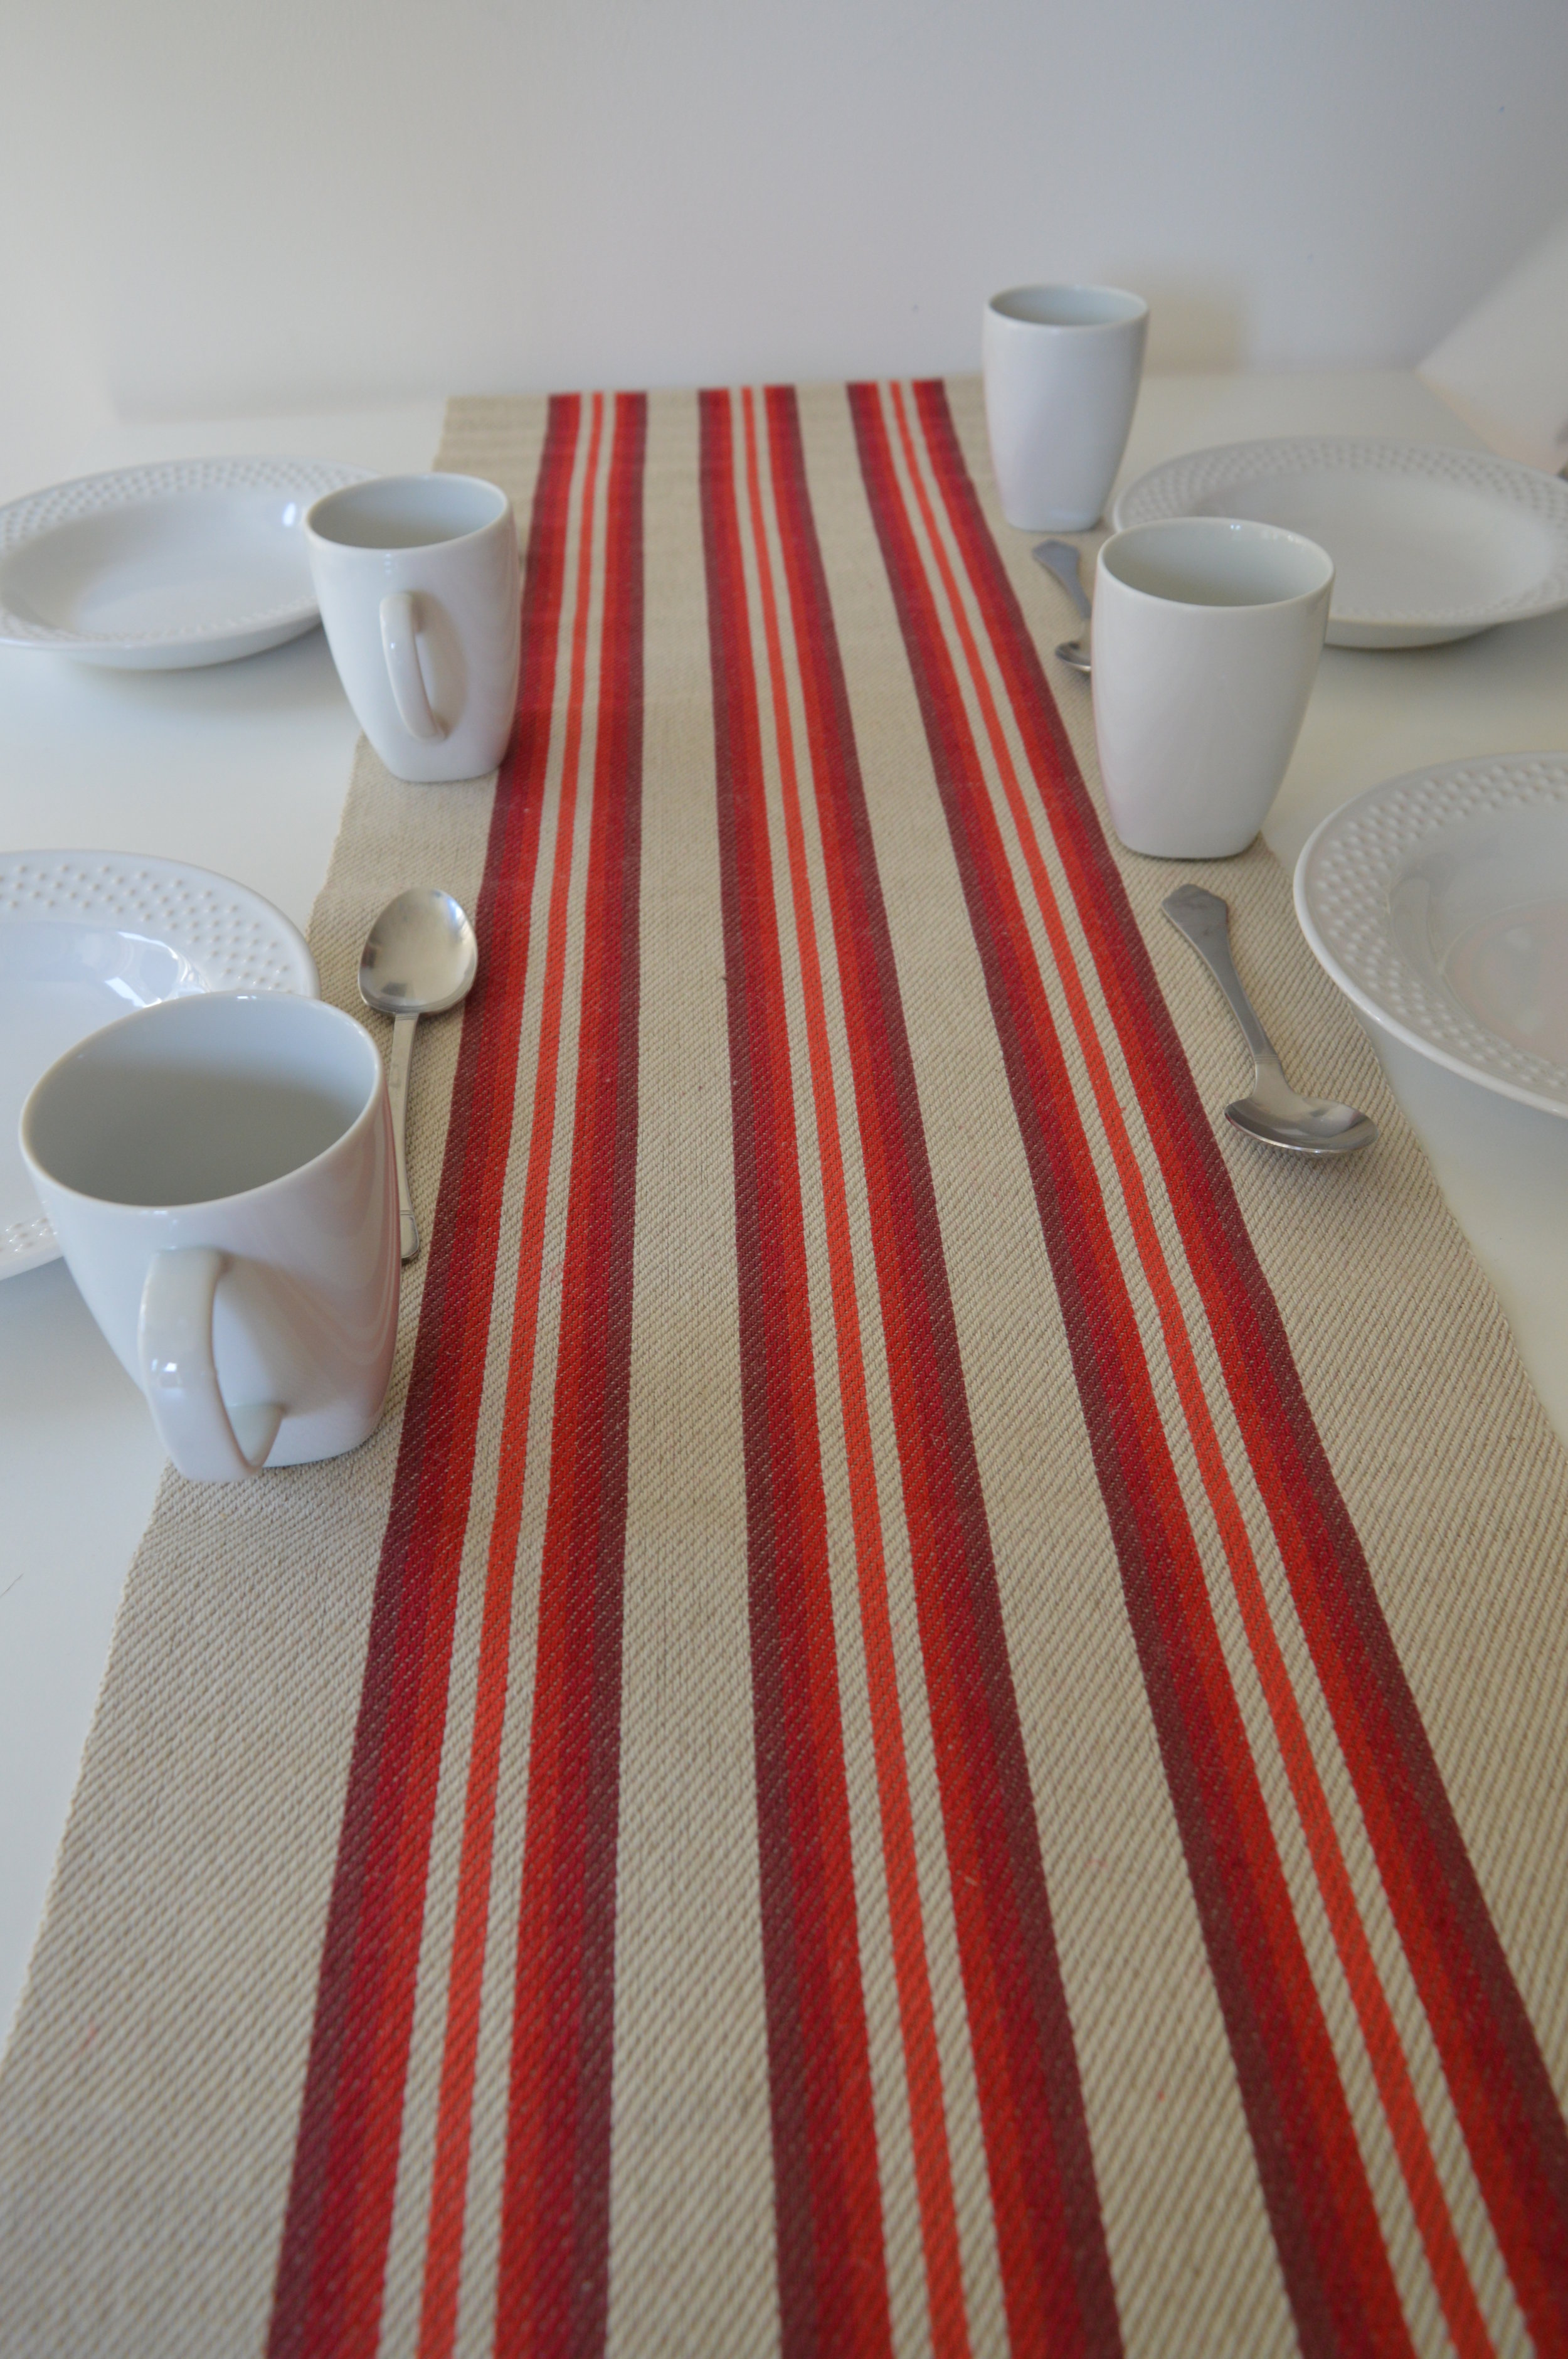 Treva table runner - Making time with the family special.